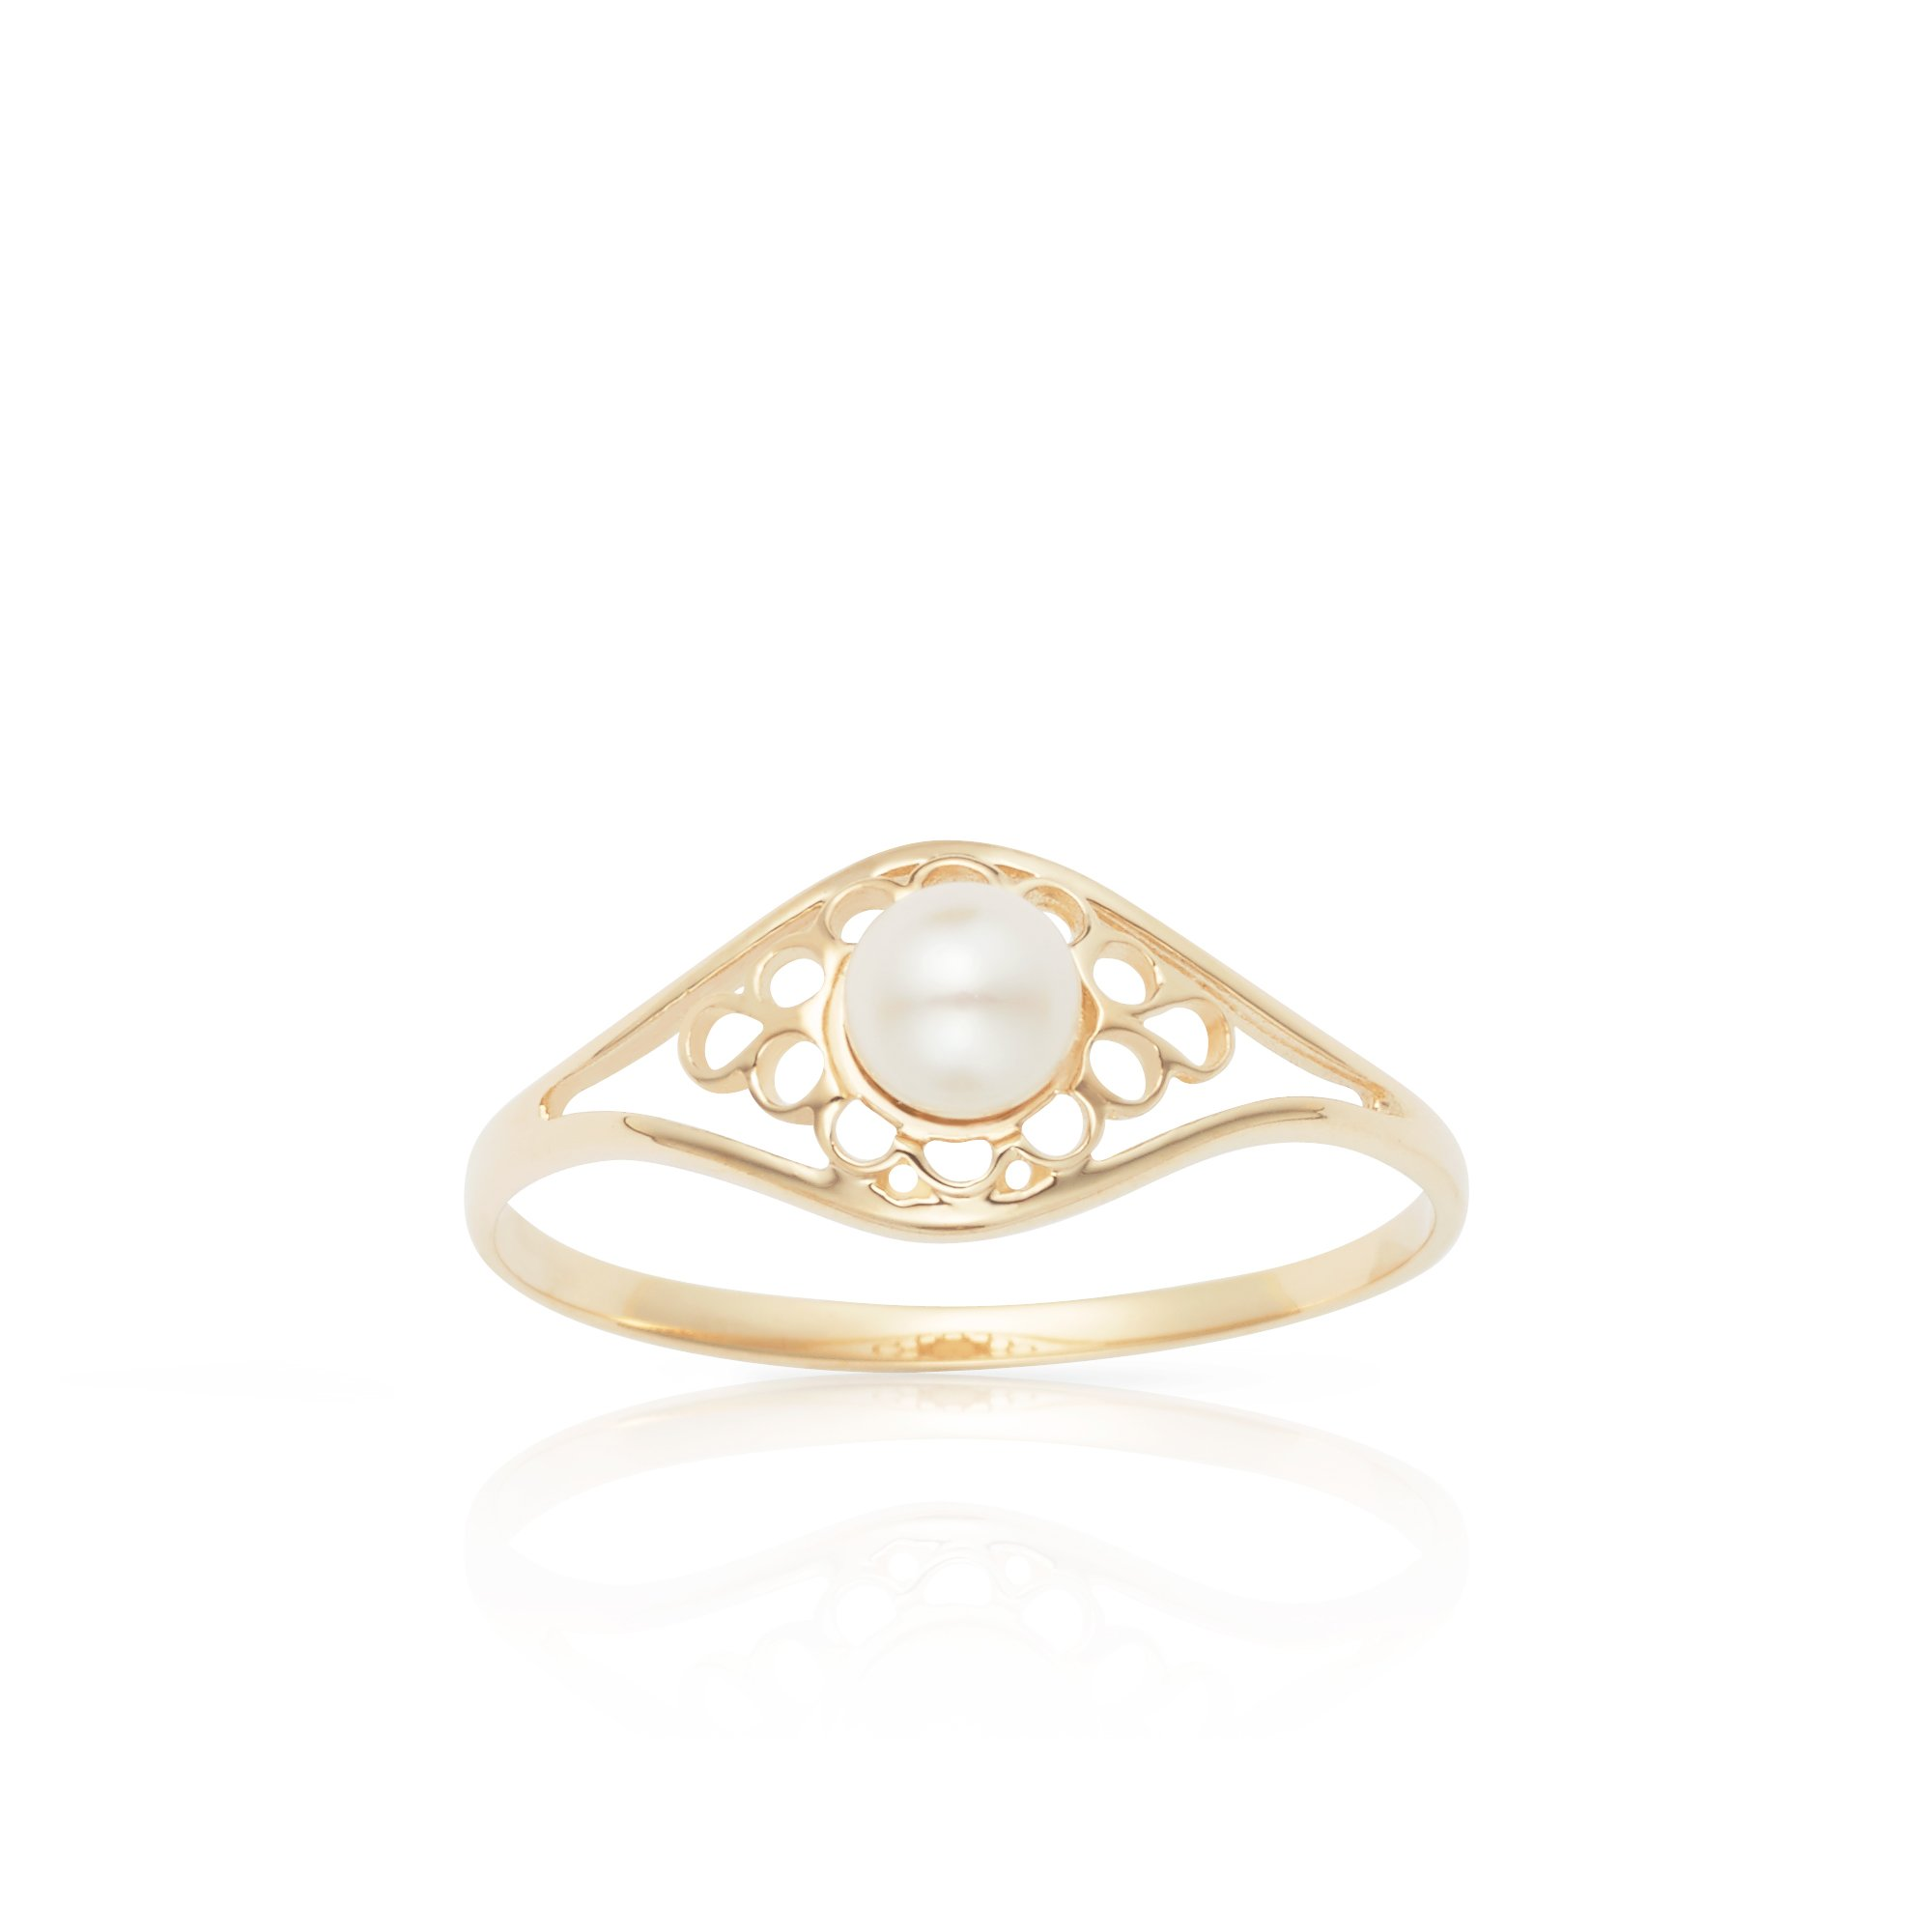 Solid 14k Yellow Gold White Pearl Classic Vintage Style Ring For Women And Girls (10) by Jewel Connection